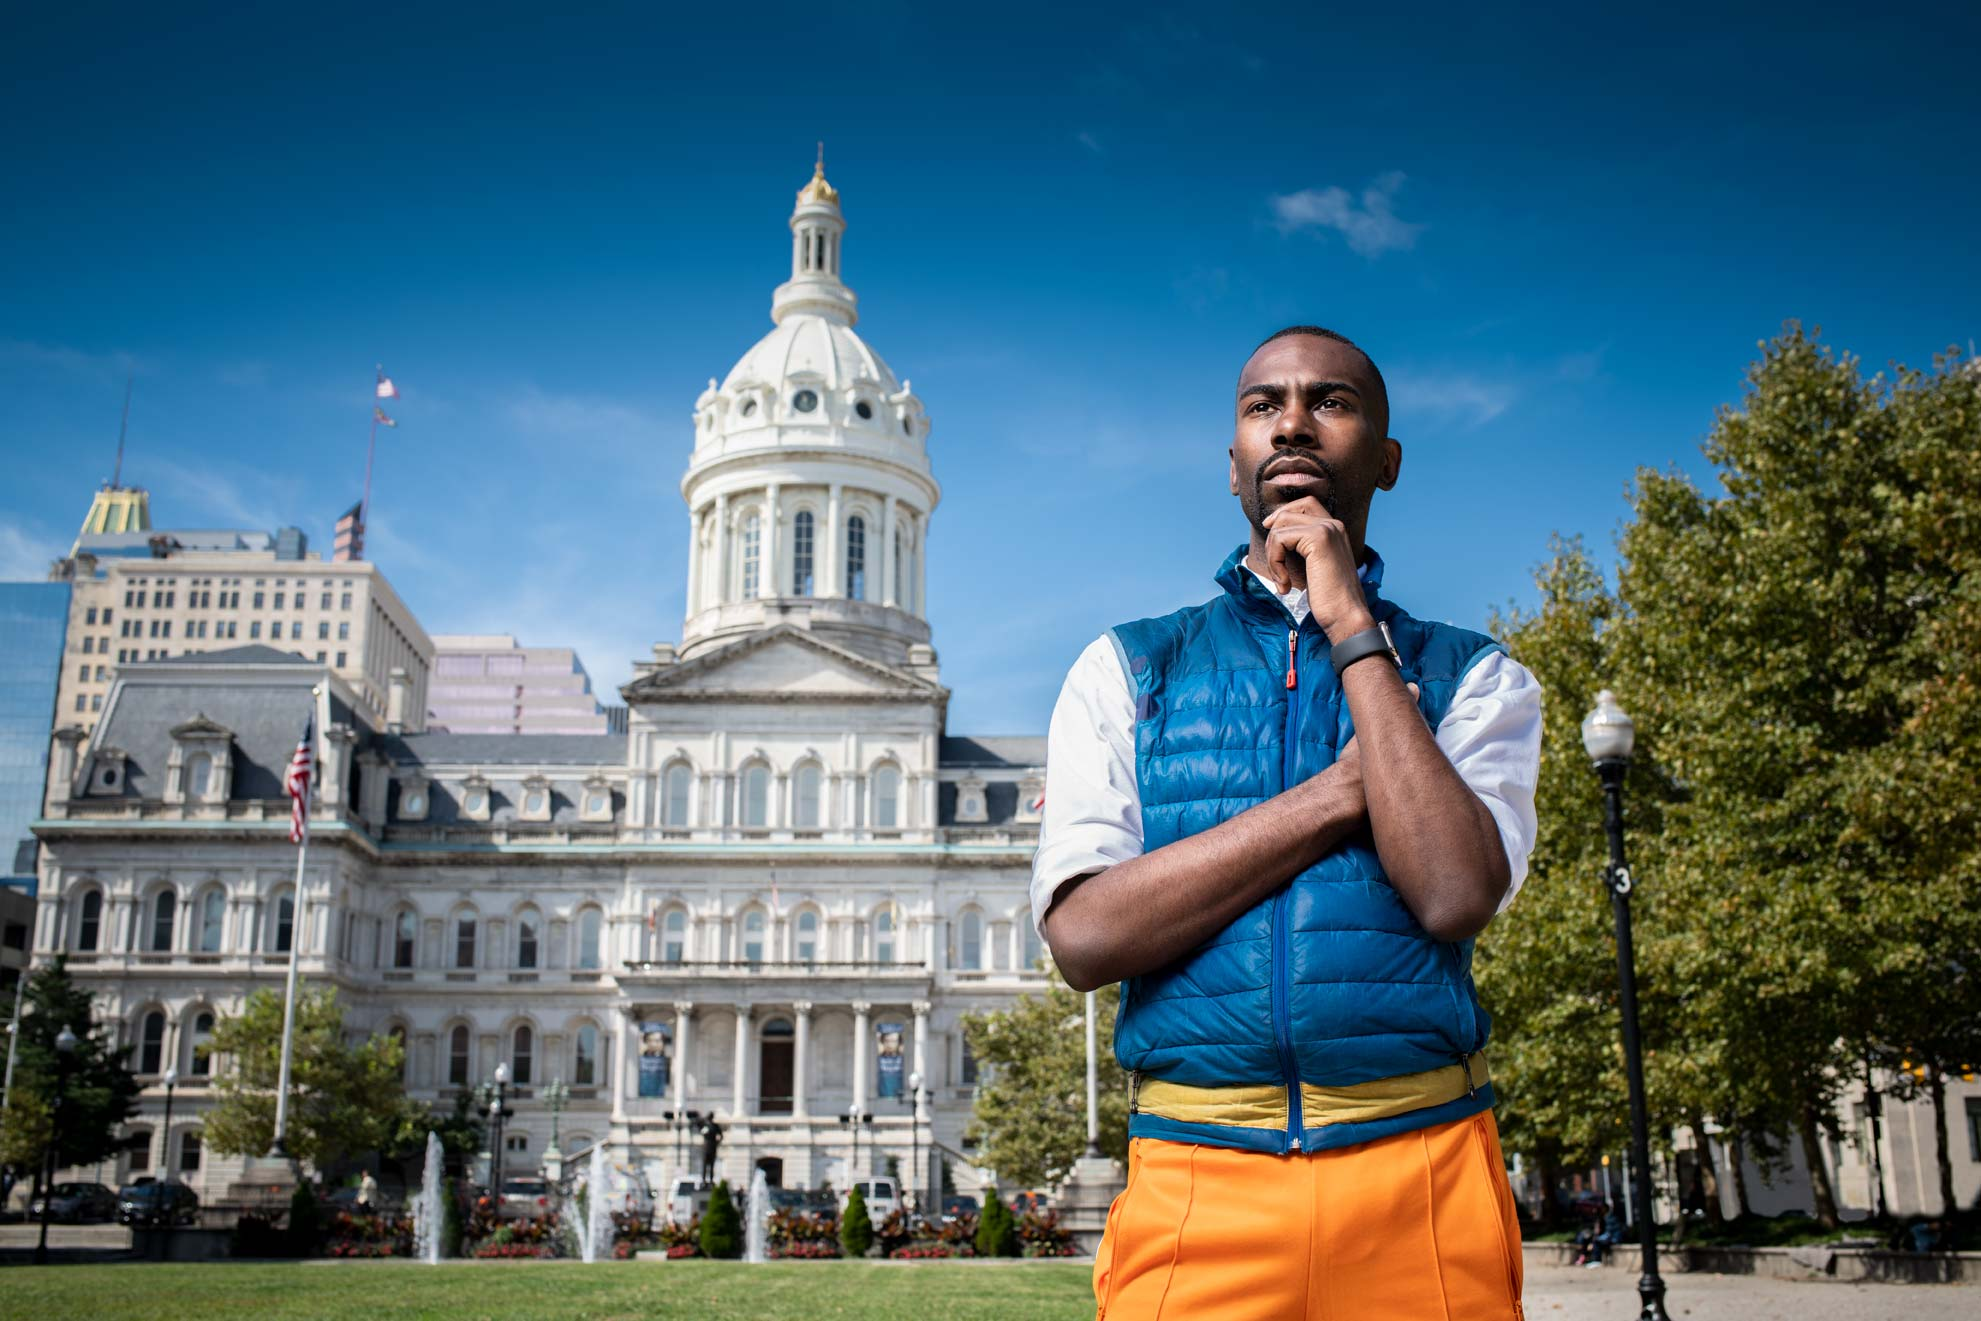 Social activist DeRay Mckesson wearing his signature blue vest in front of the Baltimore City Hall